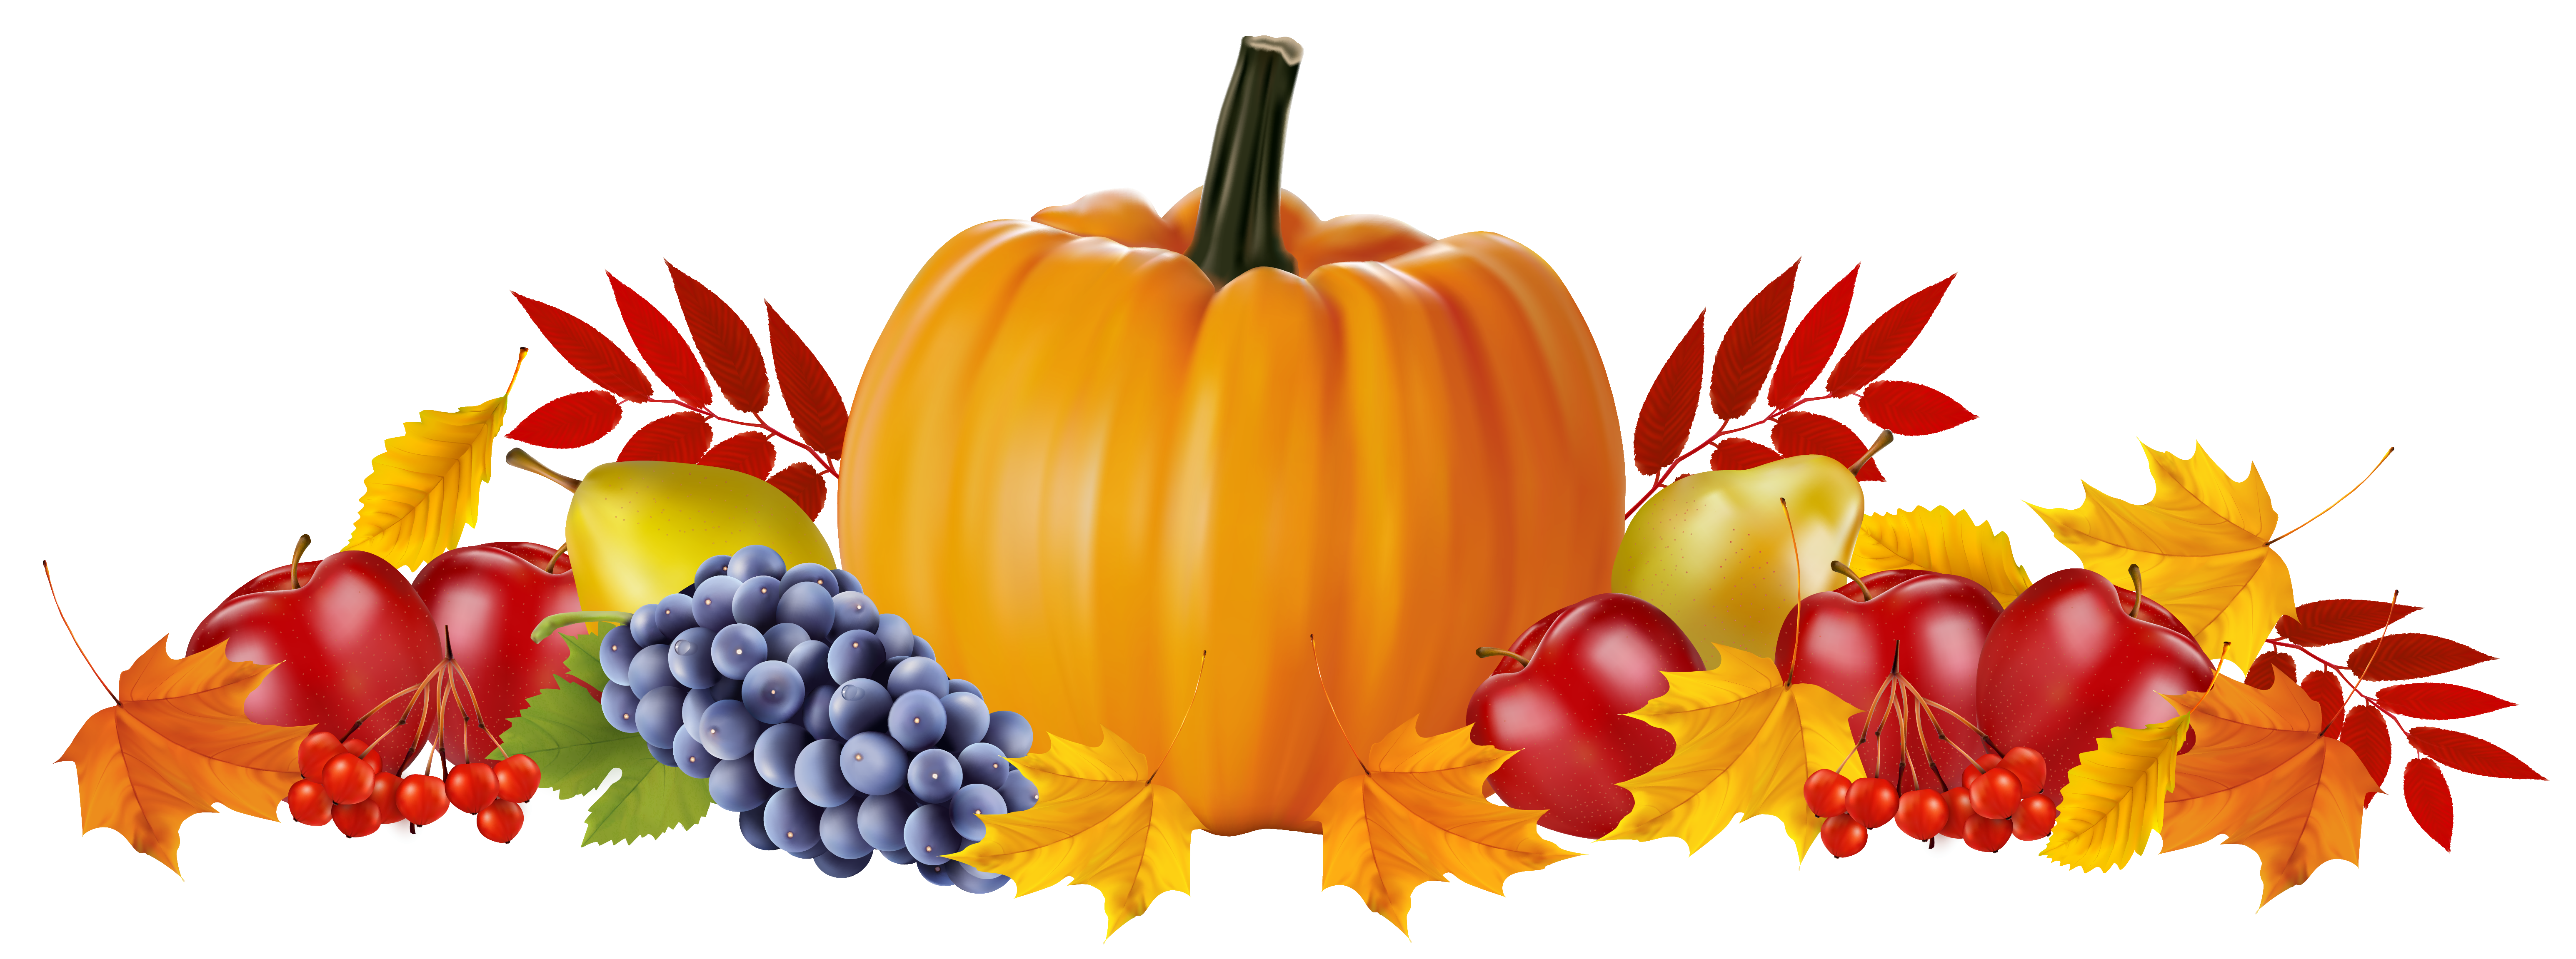 Autumn Fruits and Leaves PNG Clipart Image.